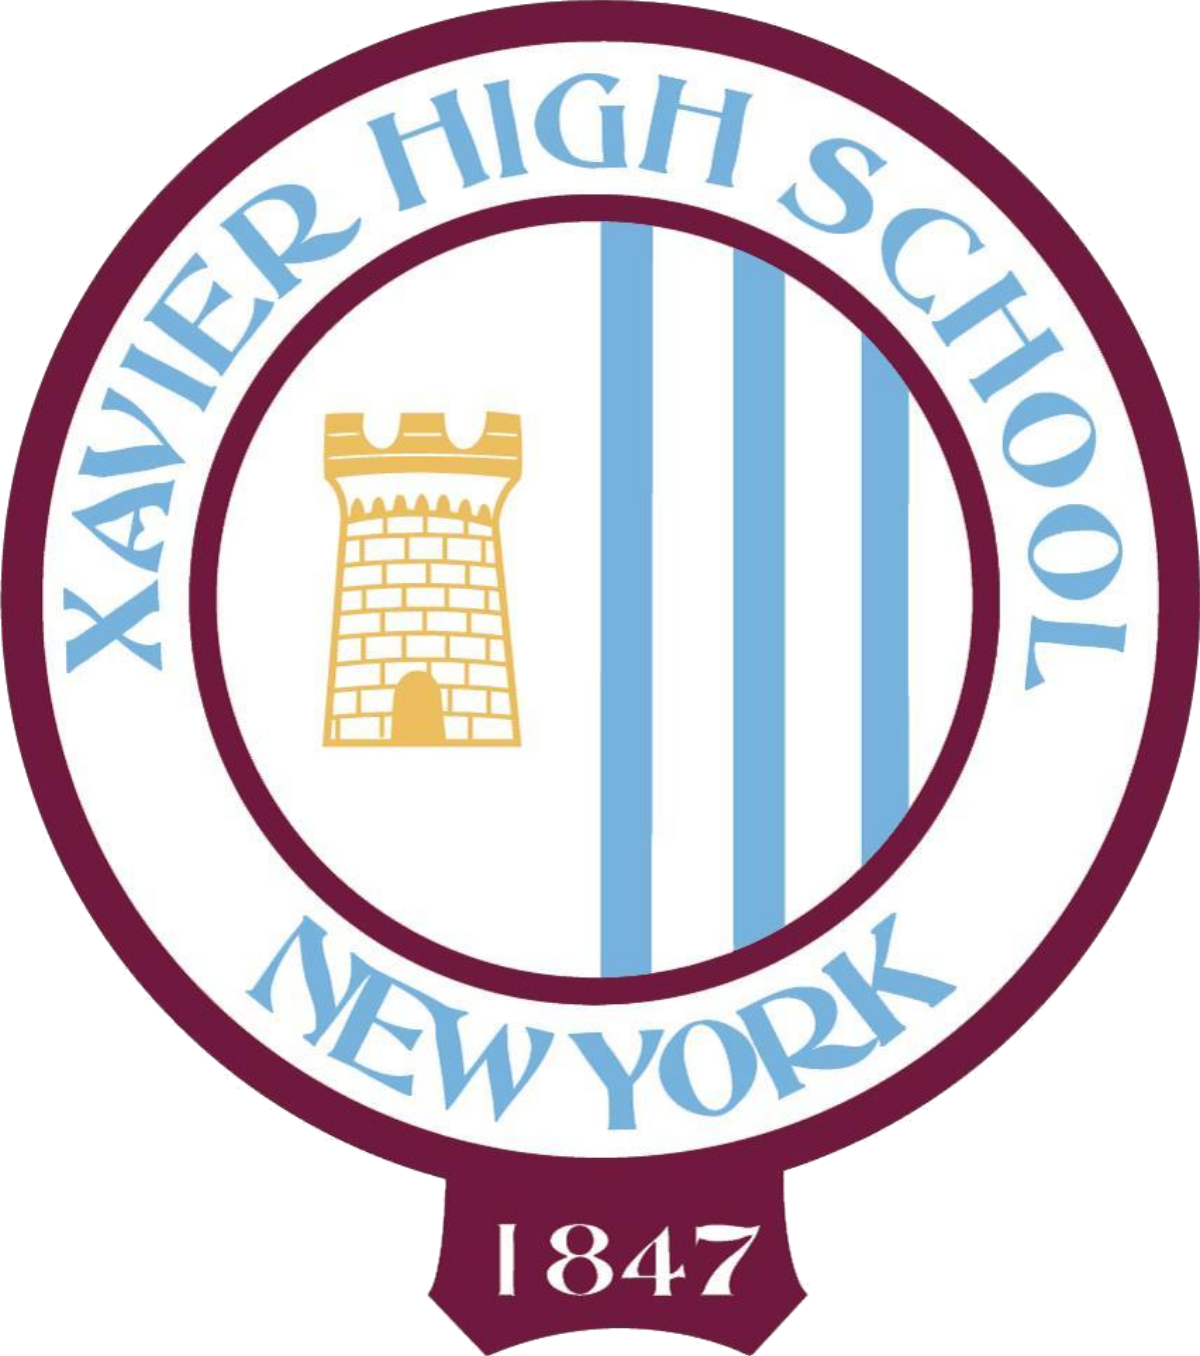 Xavier High School (New York City).